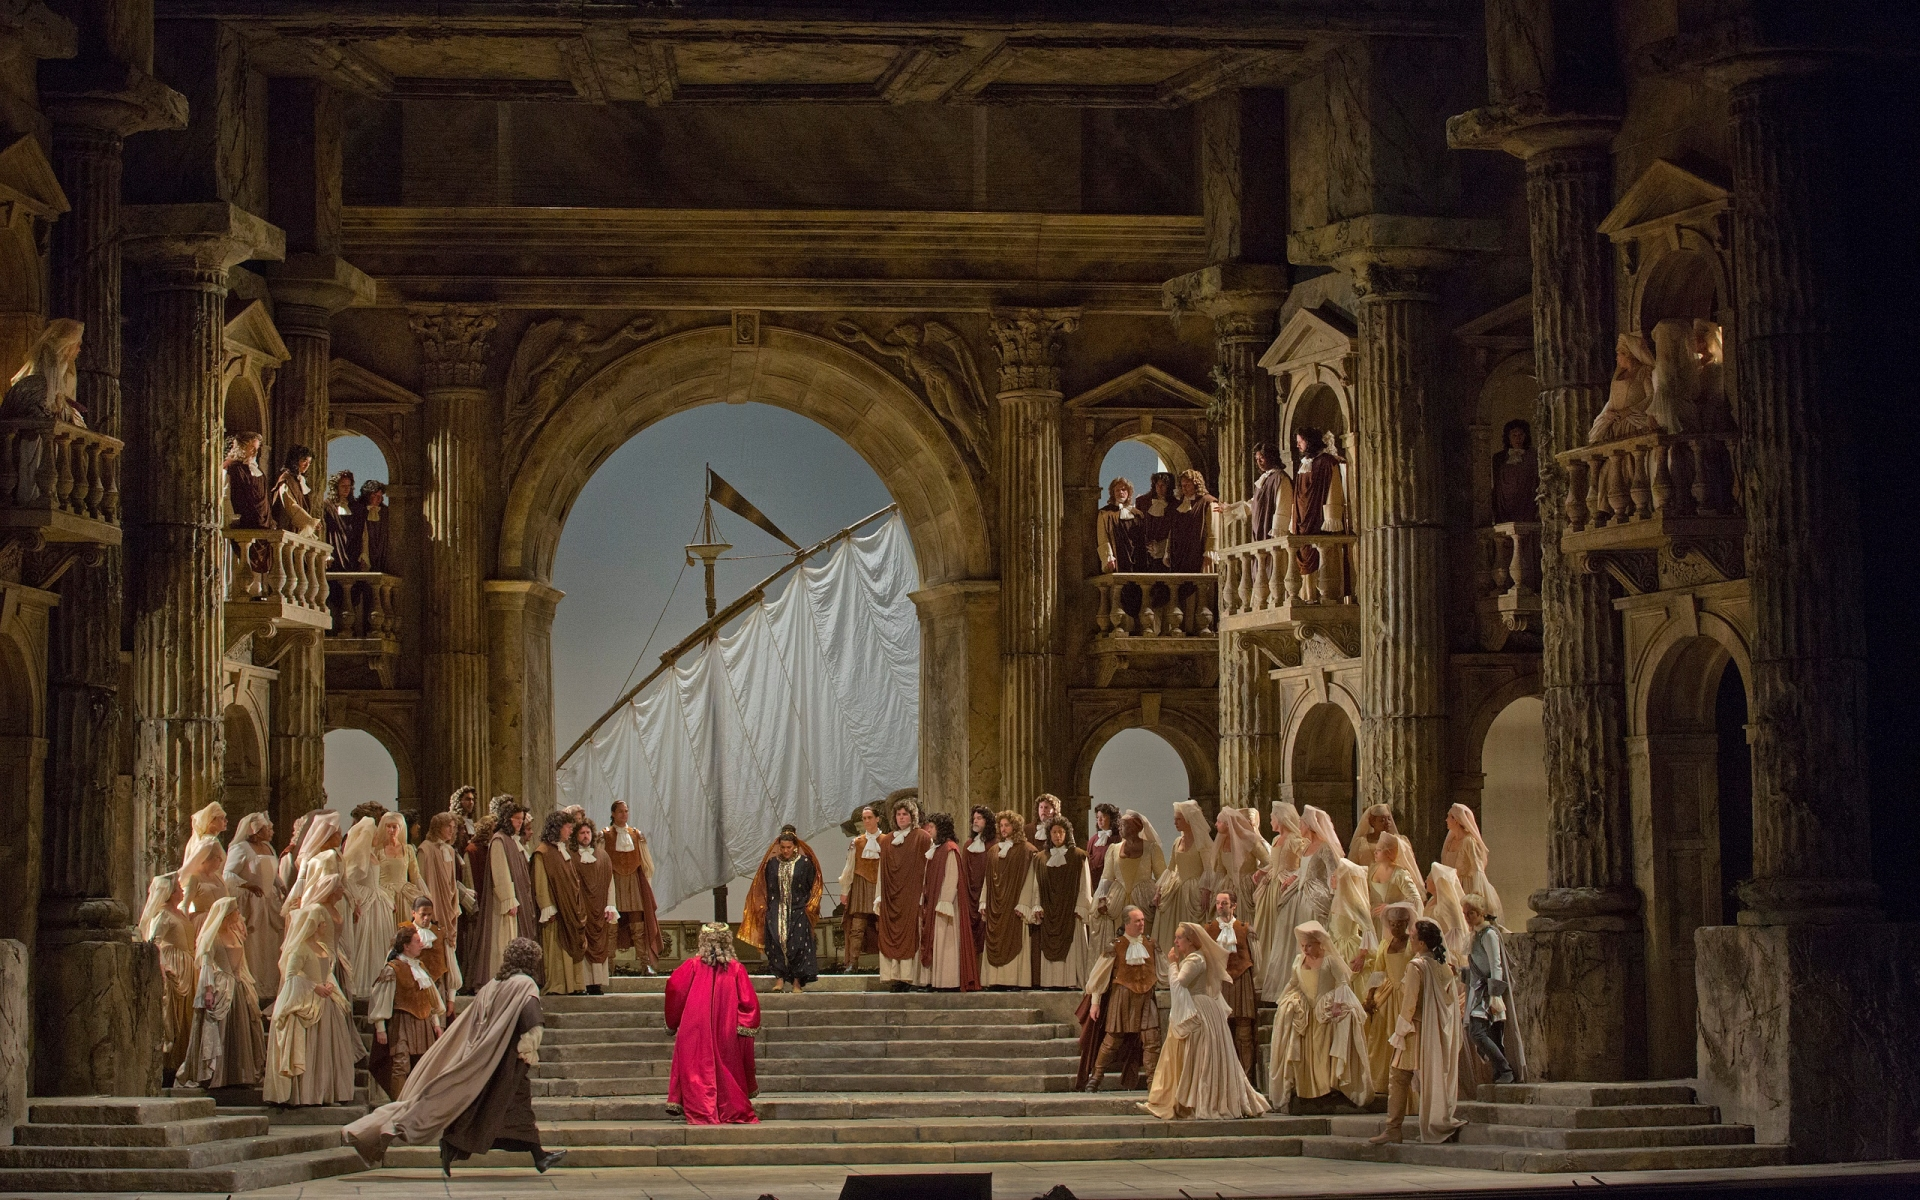 Consider seeing a show at the Metropolitan Opera House